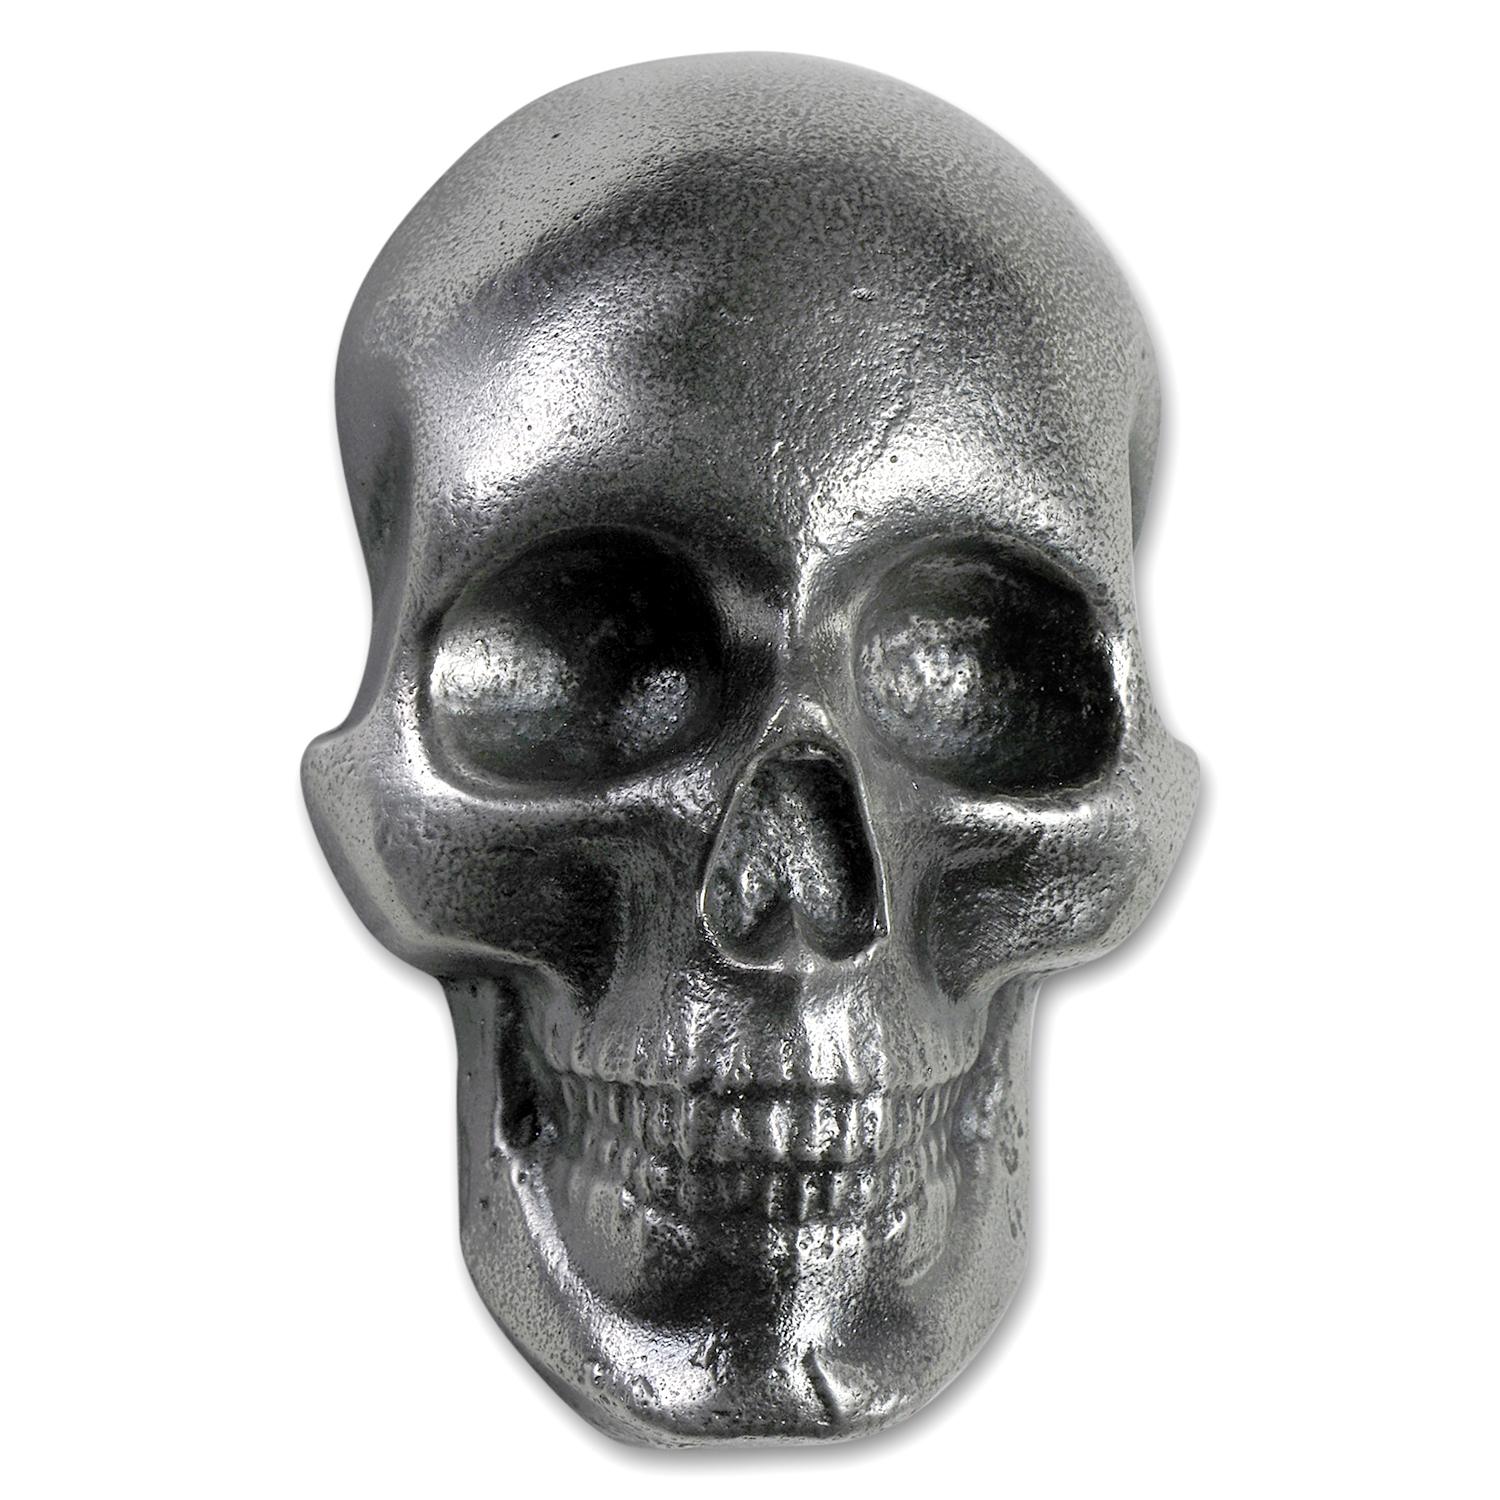 10 oz Silver - MK Barz & Bullion (Limited Edition, 3D Skull)